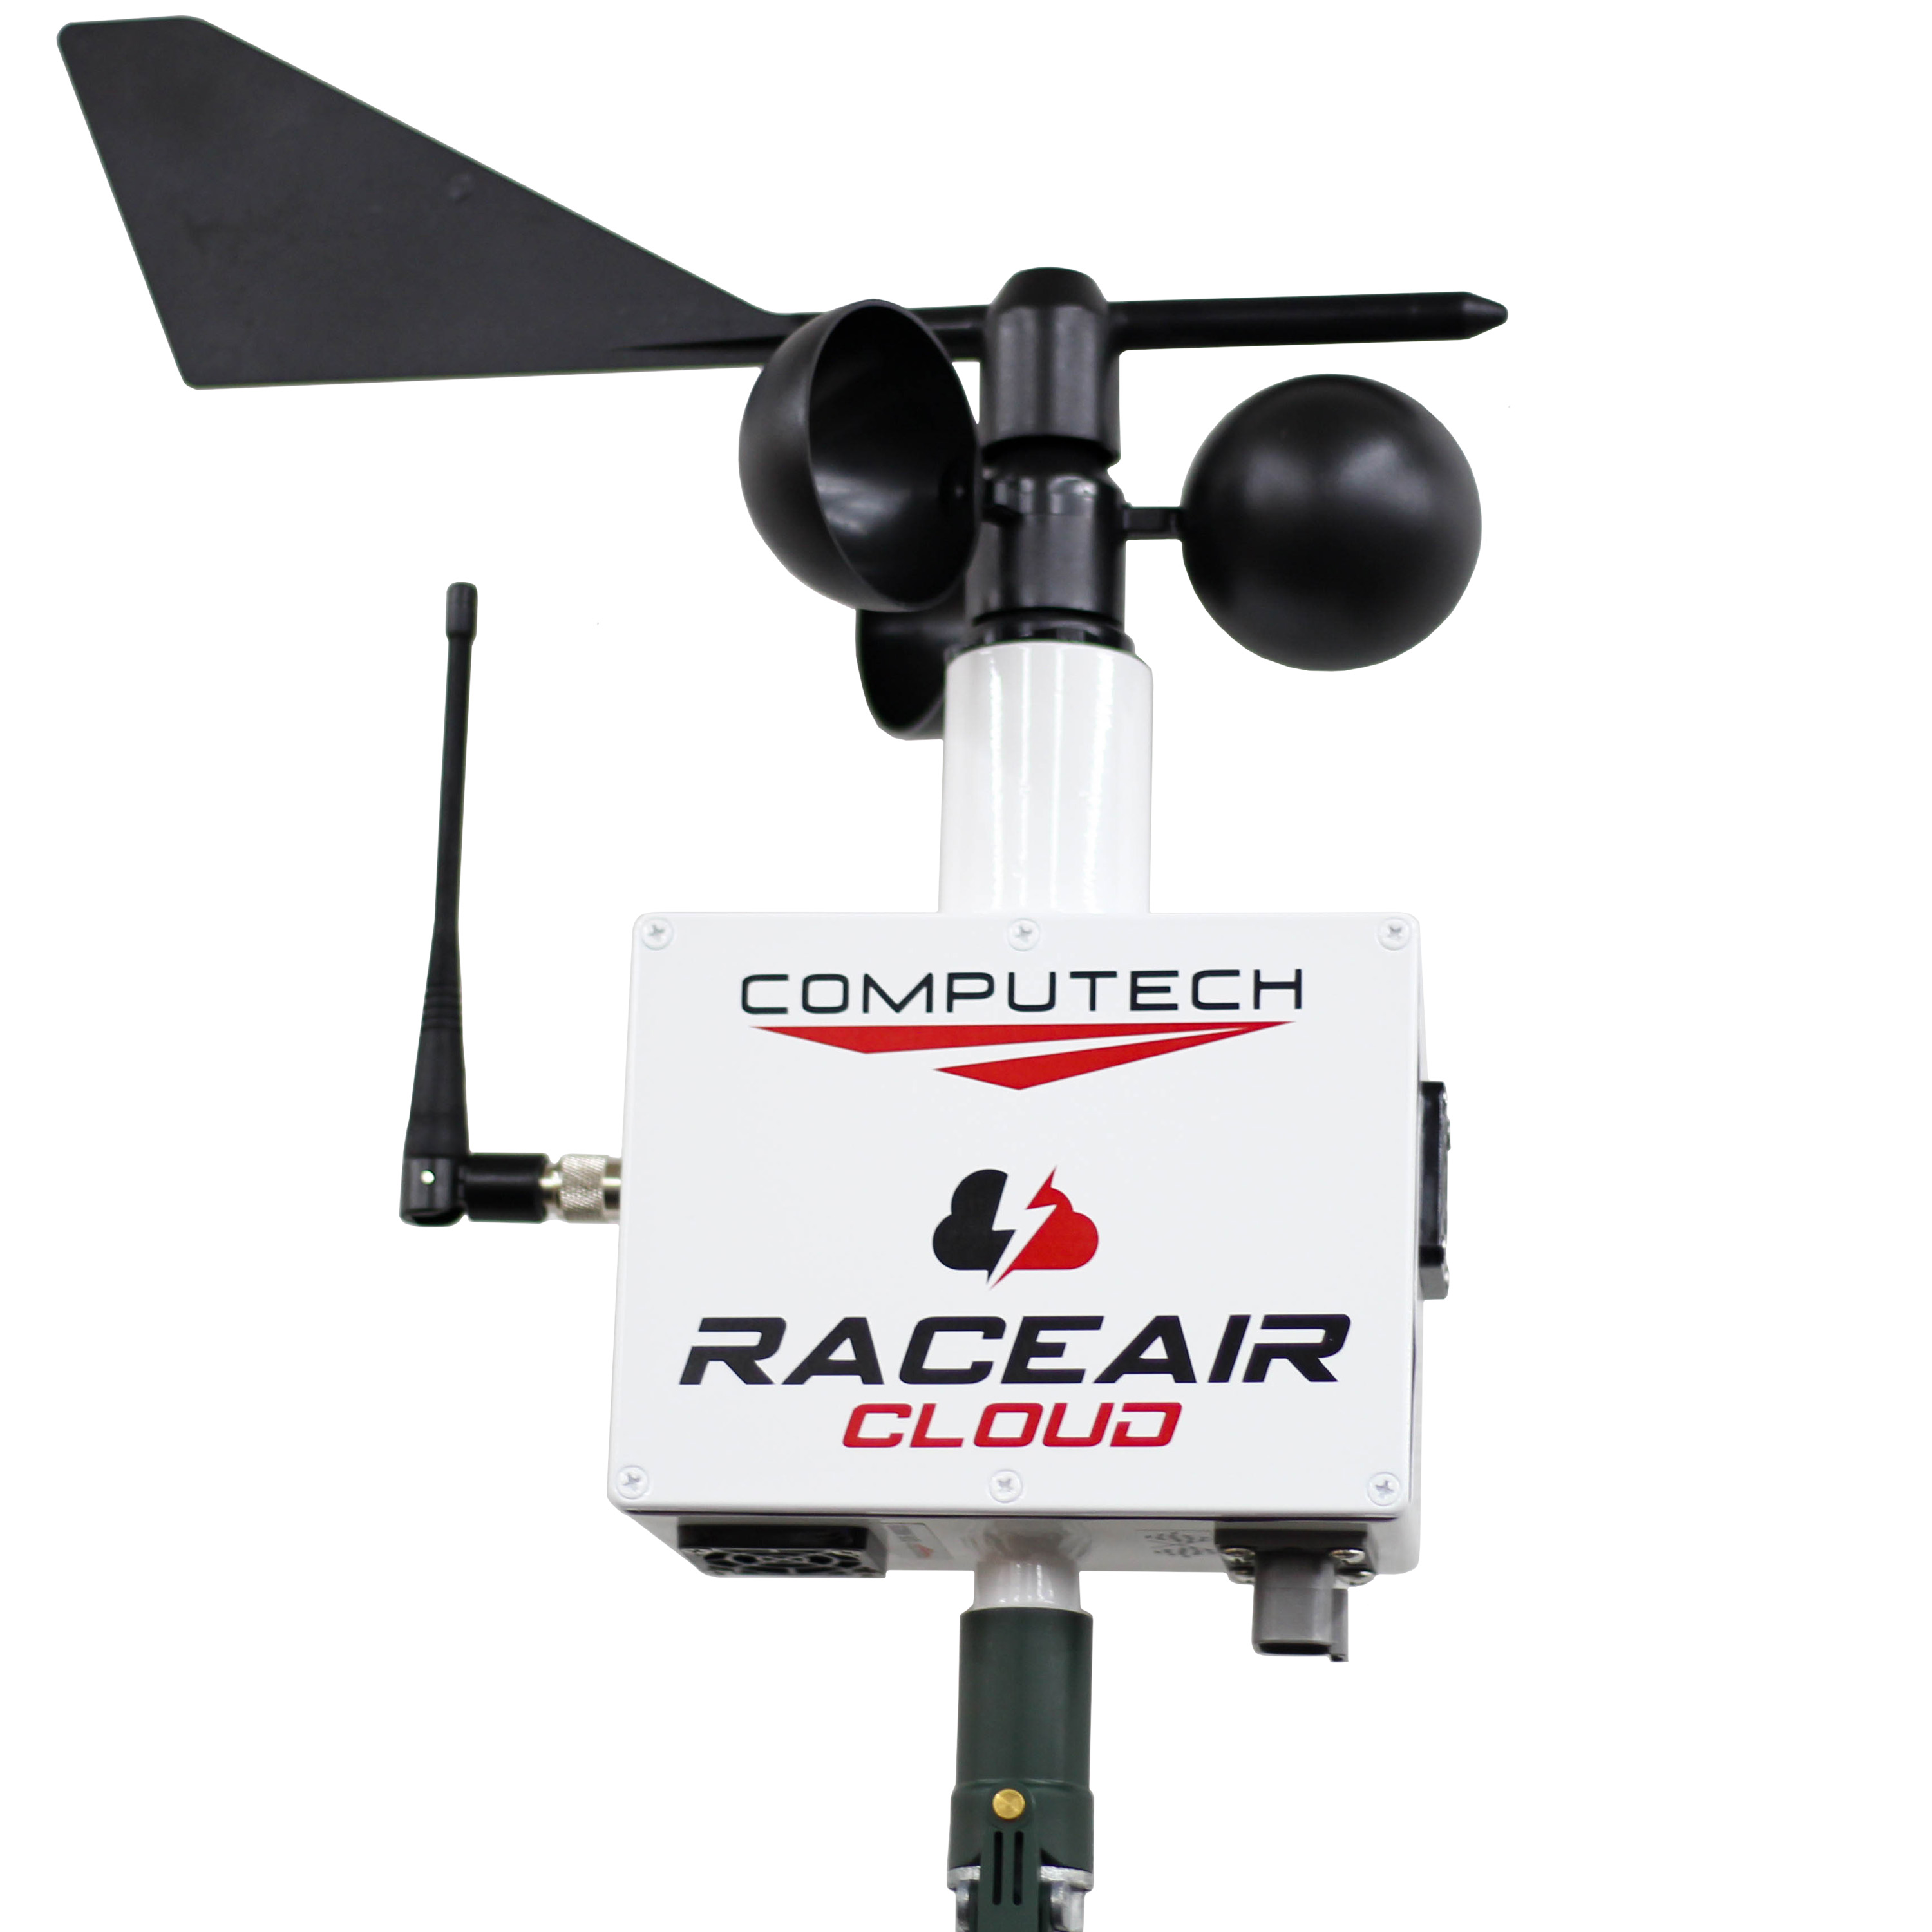 3315 - RaceAir Cloud Deluxe Model with Texting Wind and Paging Trailer Racing Weather Station